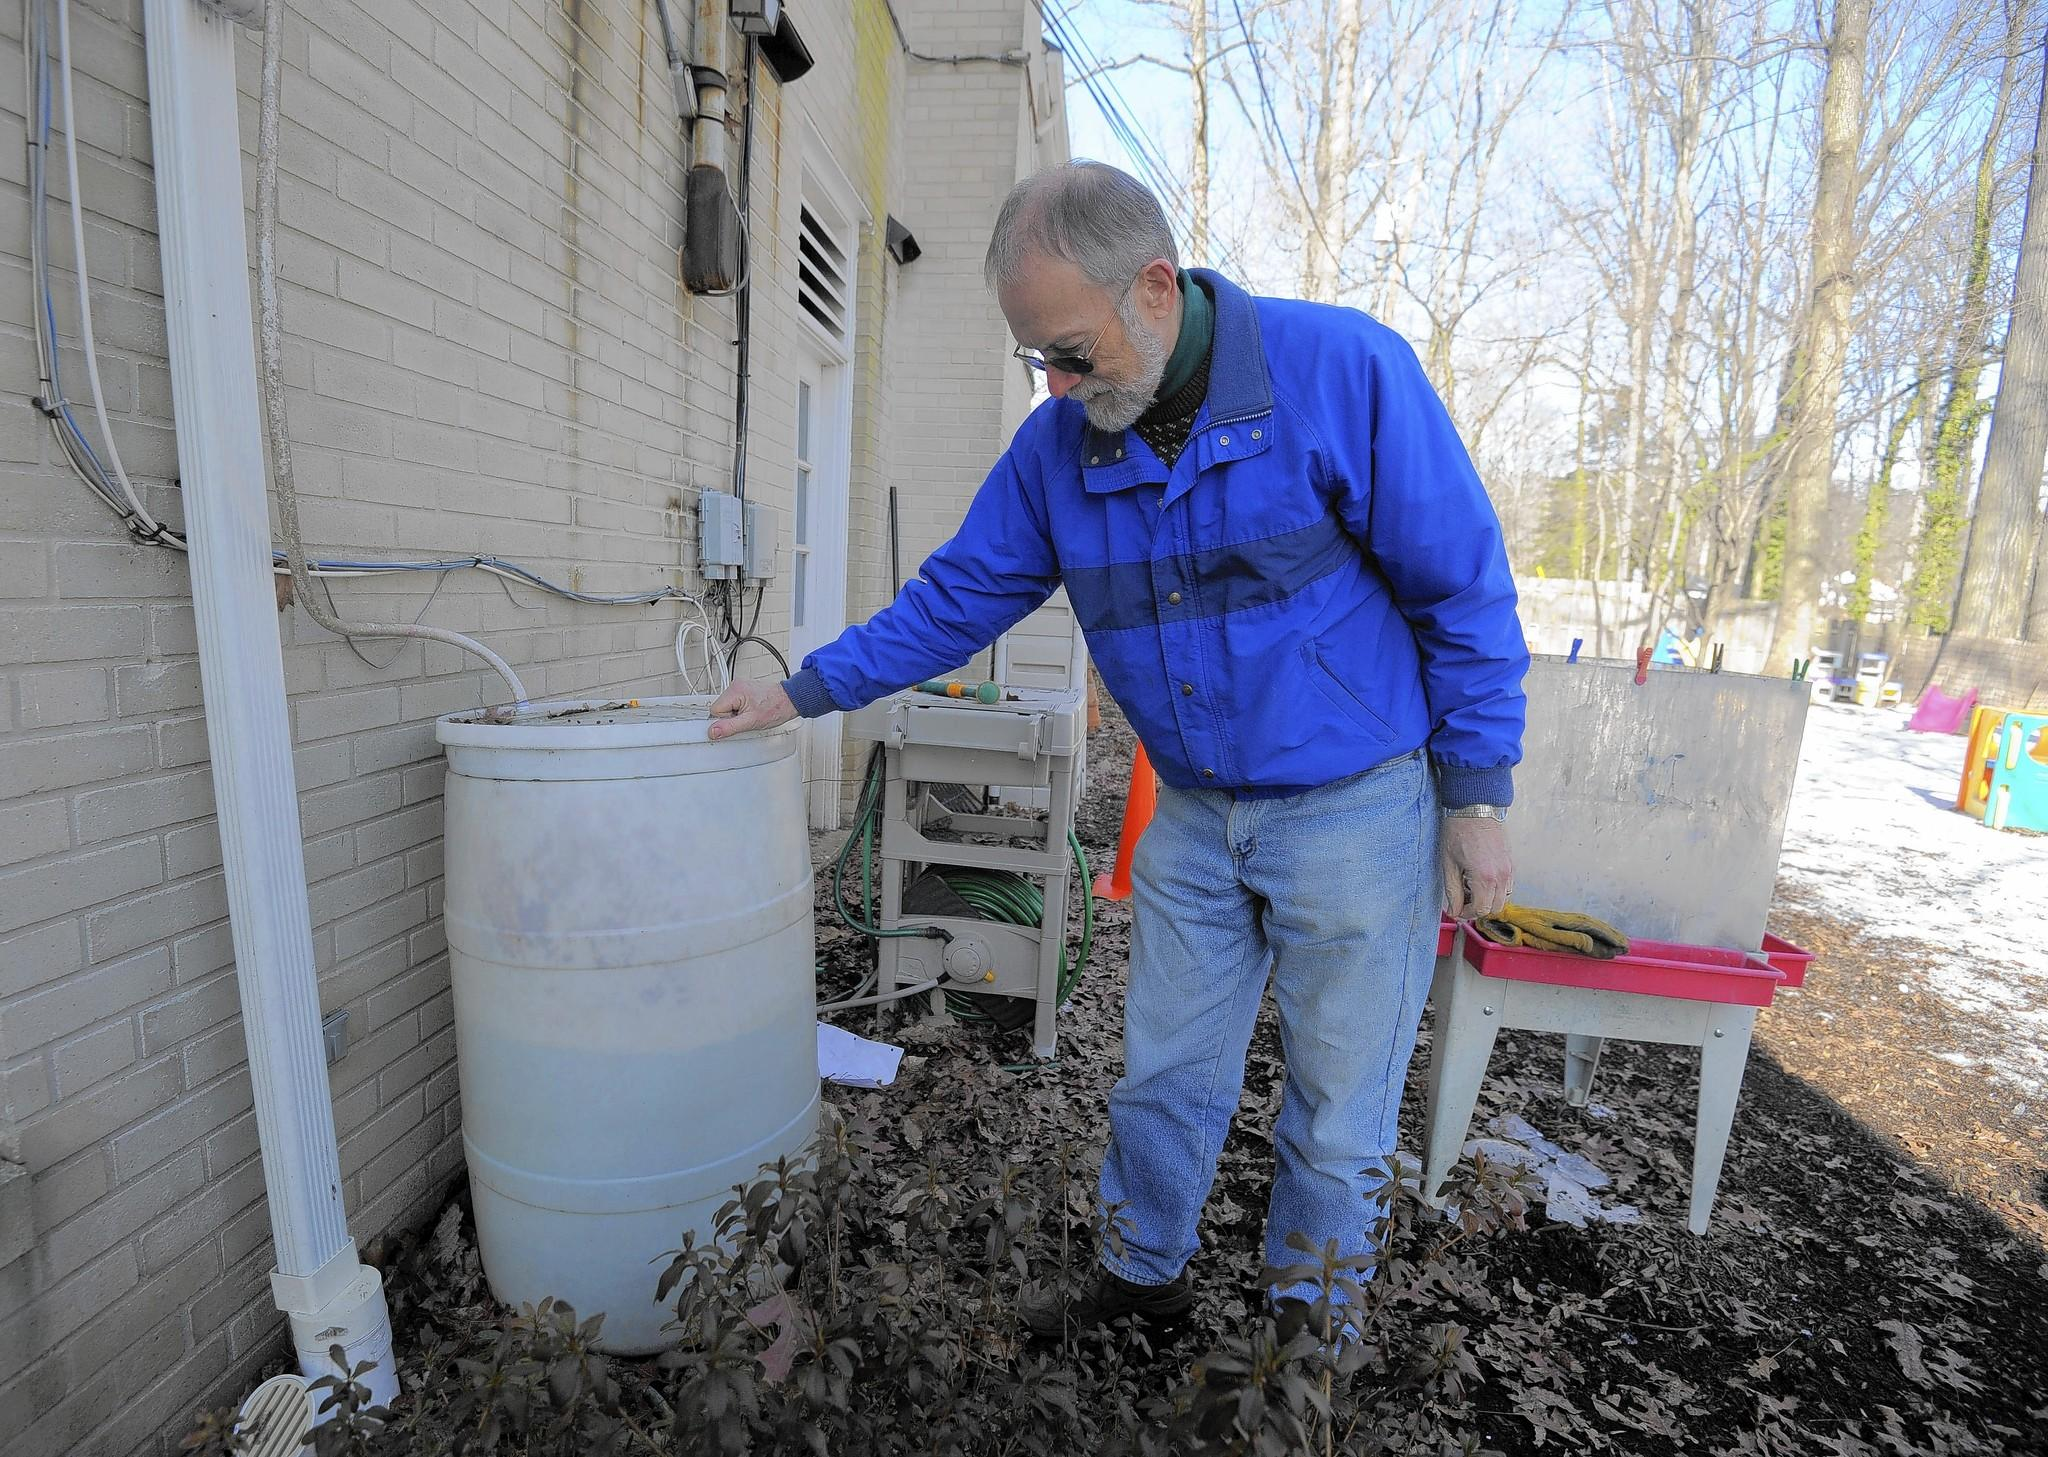 Bill Breakey, a member of Maryland Presbyterian Church's Environmental Stewardship Action Group, shows one of the rain barrels outside the building. This is one of the ways the church has been active in helping to reduce stormwater runoff.